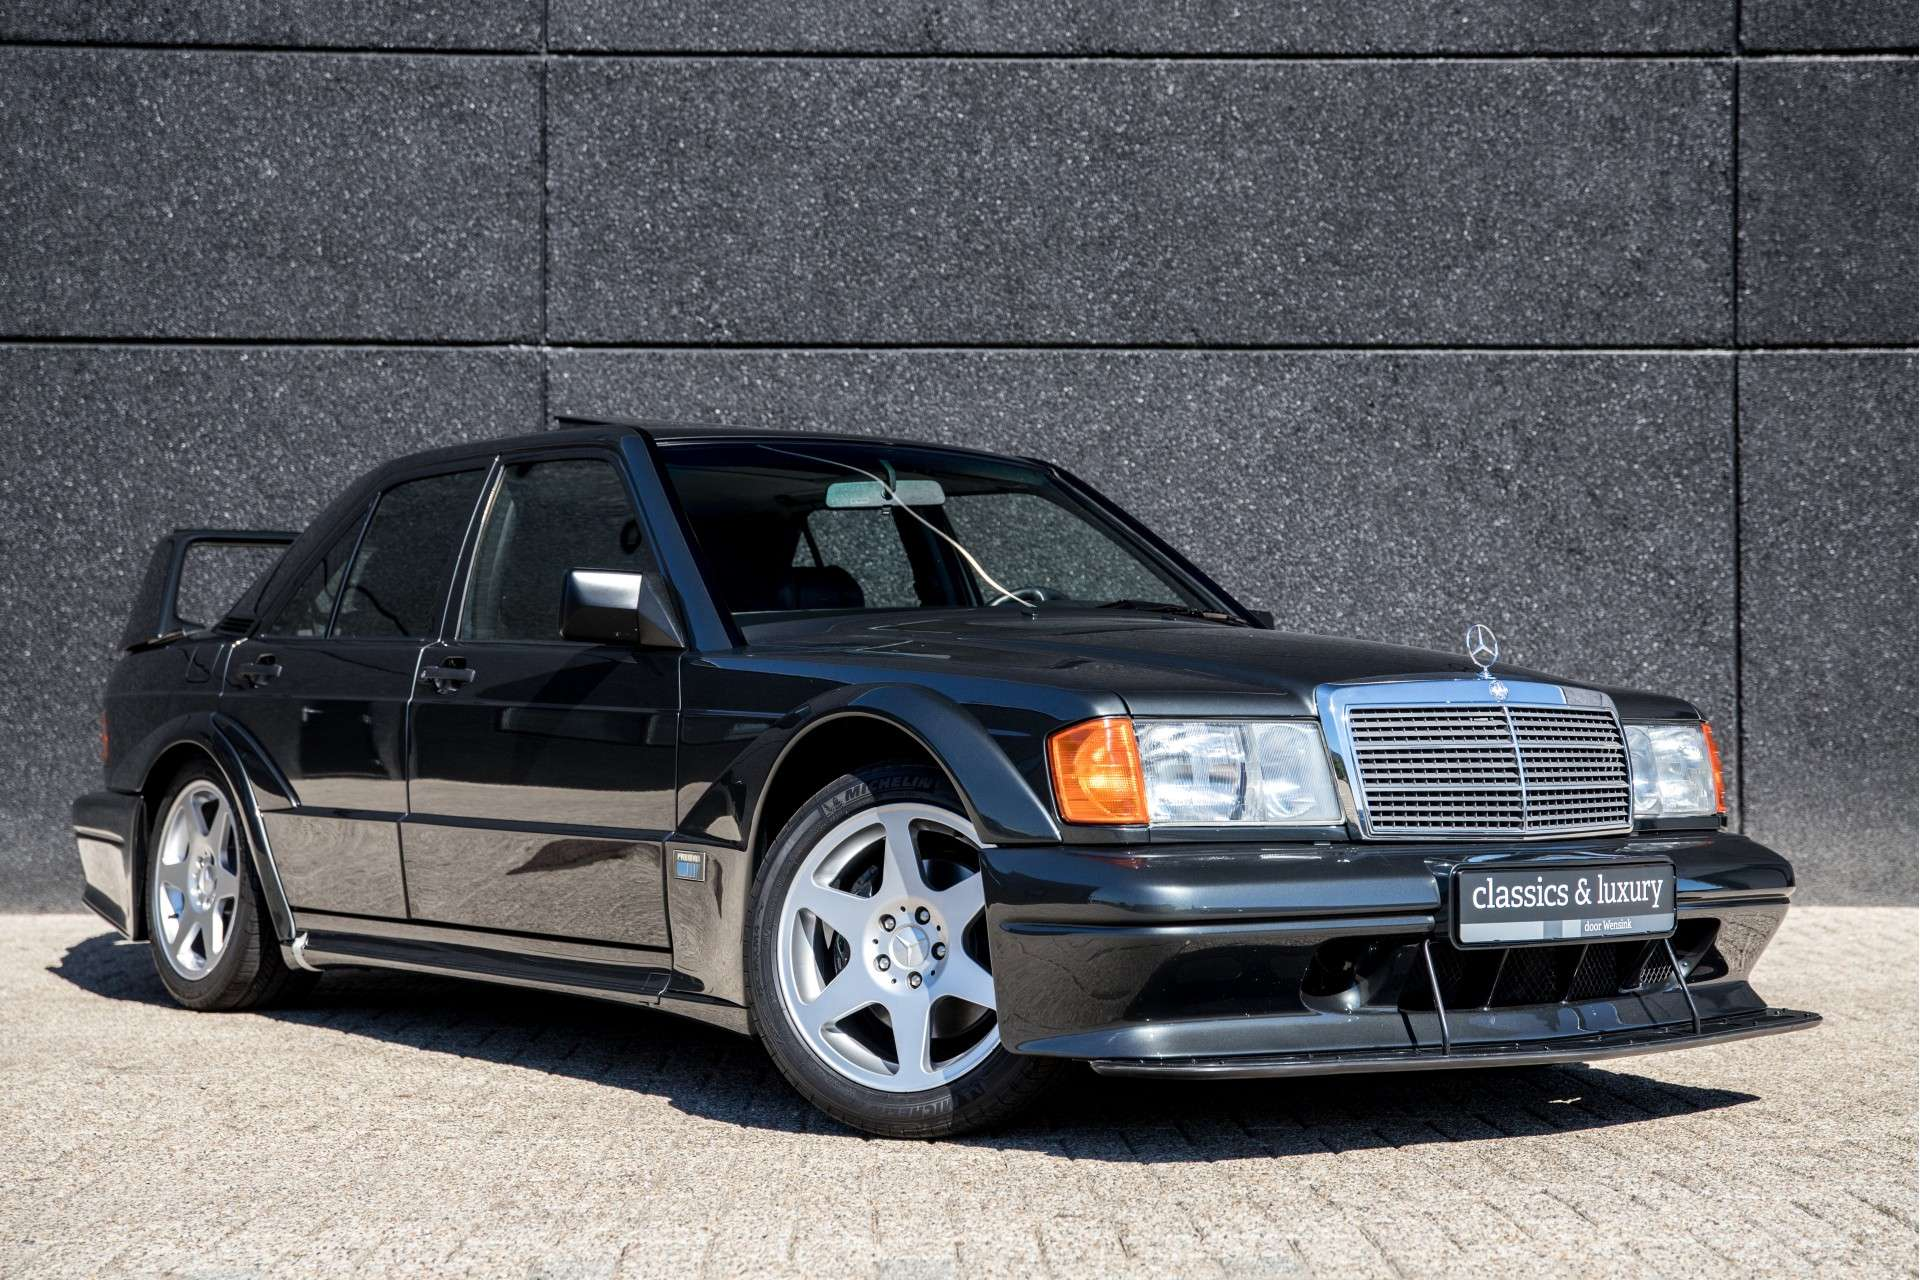 Mercedes_190_E_2.5-16_Evolution II_sale_03